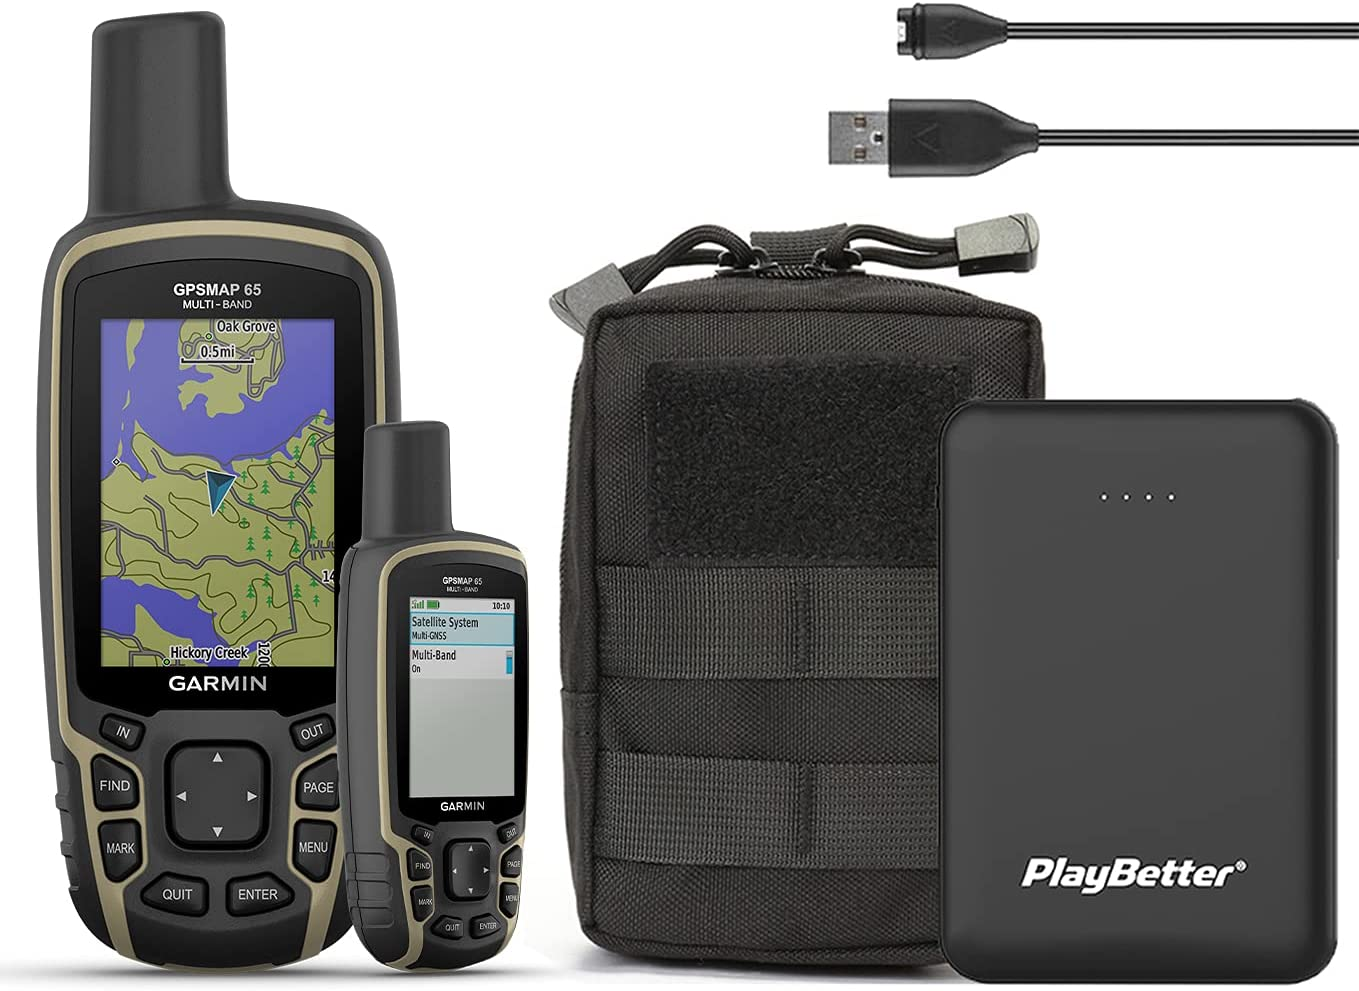 Garmin GPSMAP 65 Hiking GPS Ta New color PlayBetter Tactical Bundle with favorite